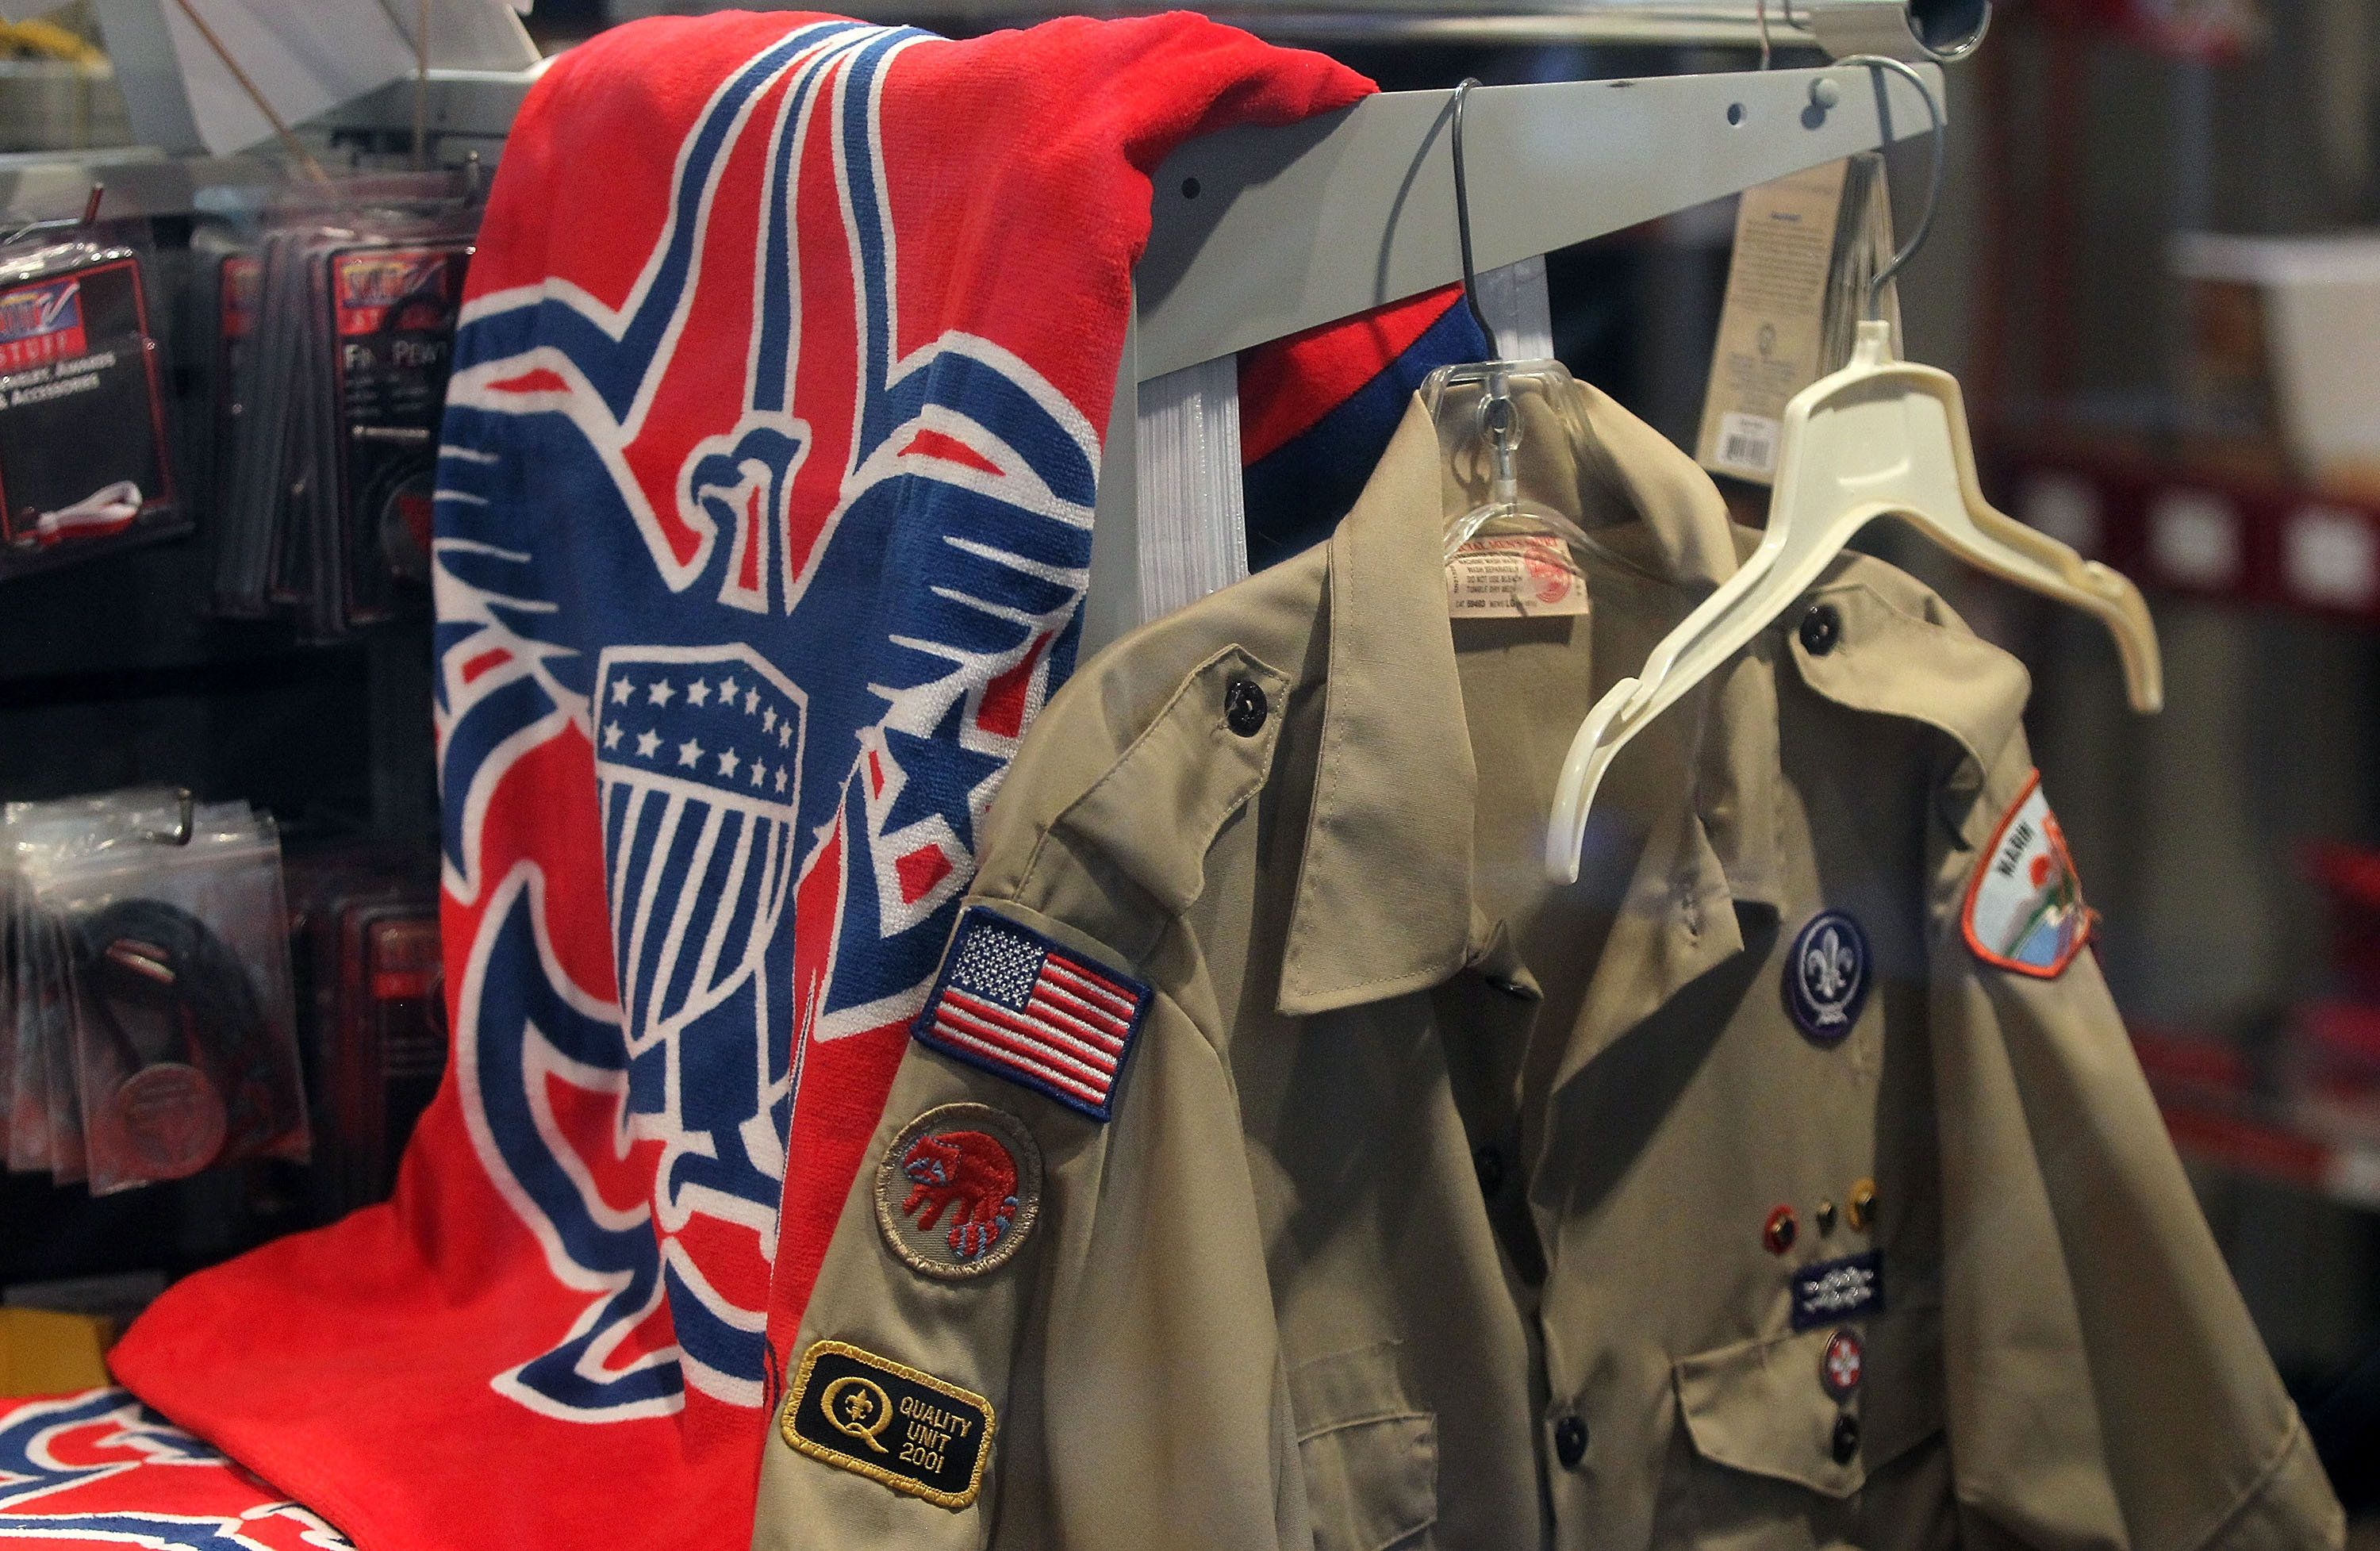 SAN RAFAEL, CA - JULY 27:  The Boy Scout logo and a uniform are displayed in a store at the Marin Council of the Boy Scouts of America on July 27, 2015 in San Rafael, California. The national executive board of the Boy Scouts of America is poised to vote to end a ban on gay adult leaders.  (Photo by Justin Sullivan/Getty Images)